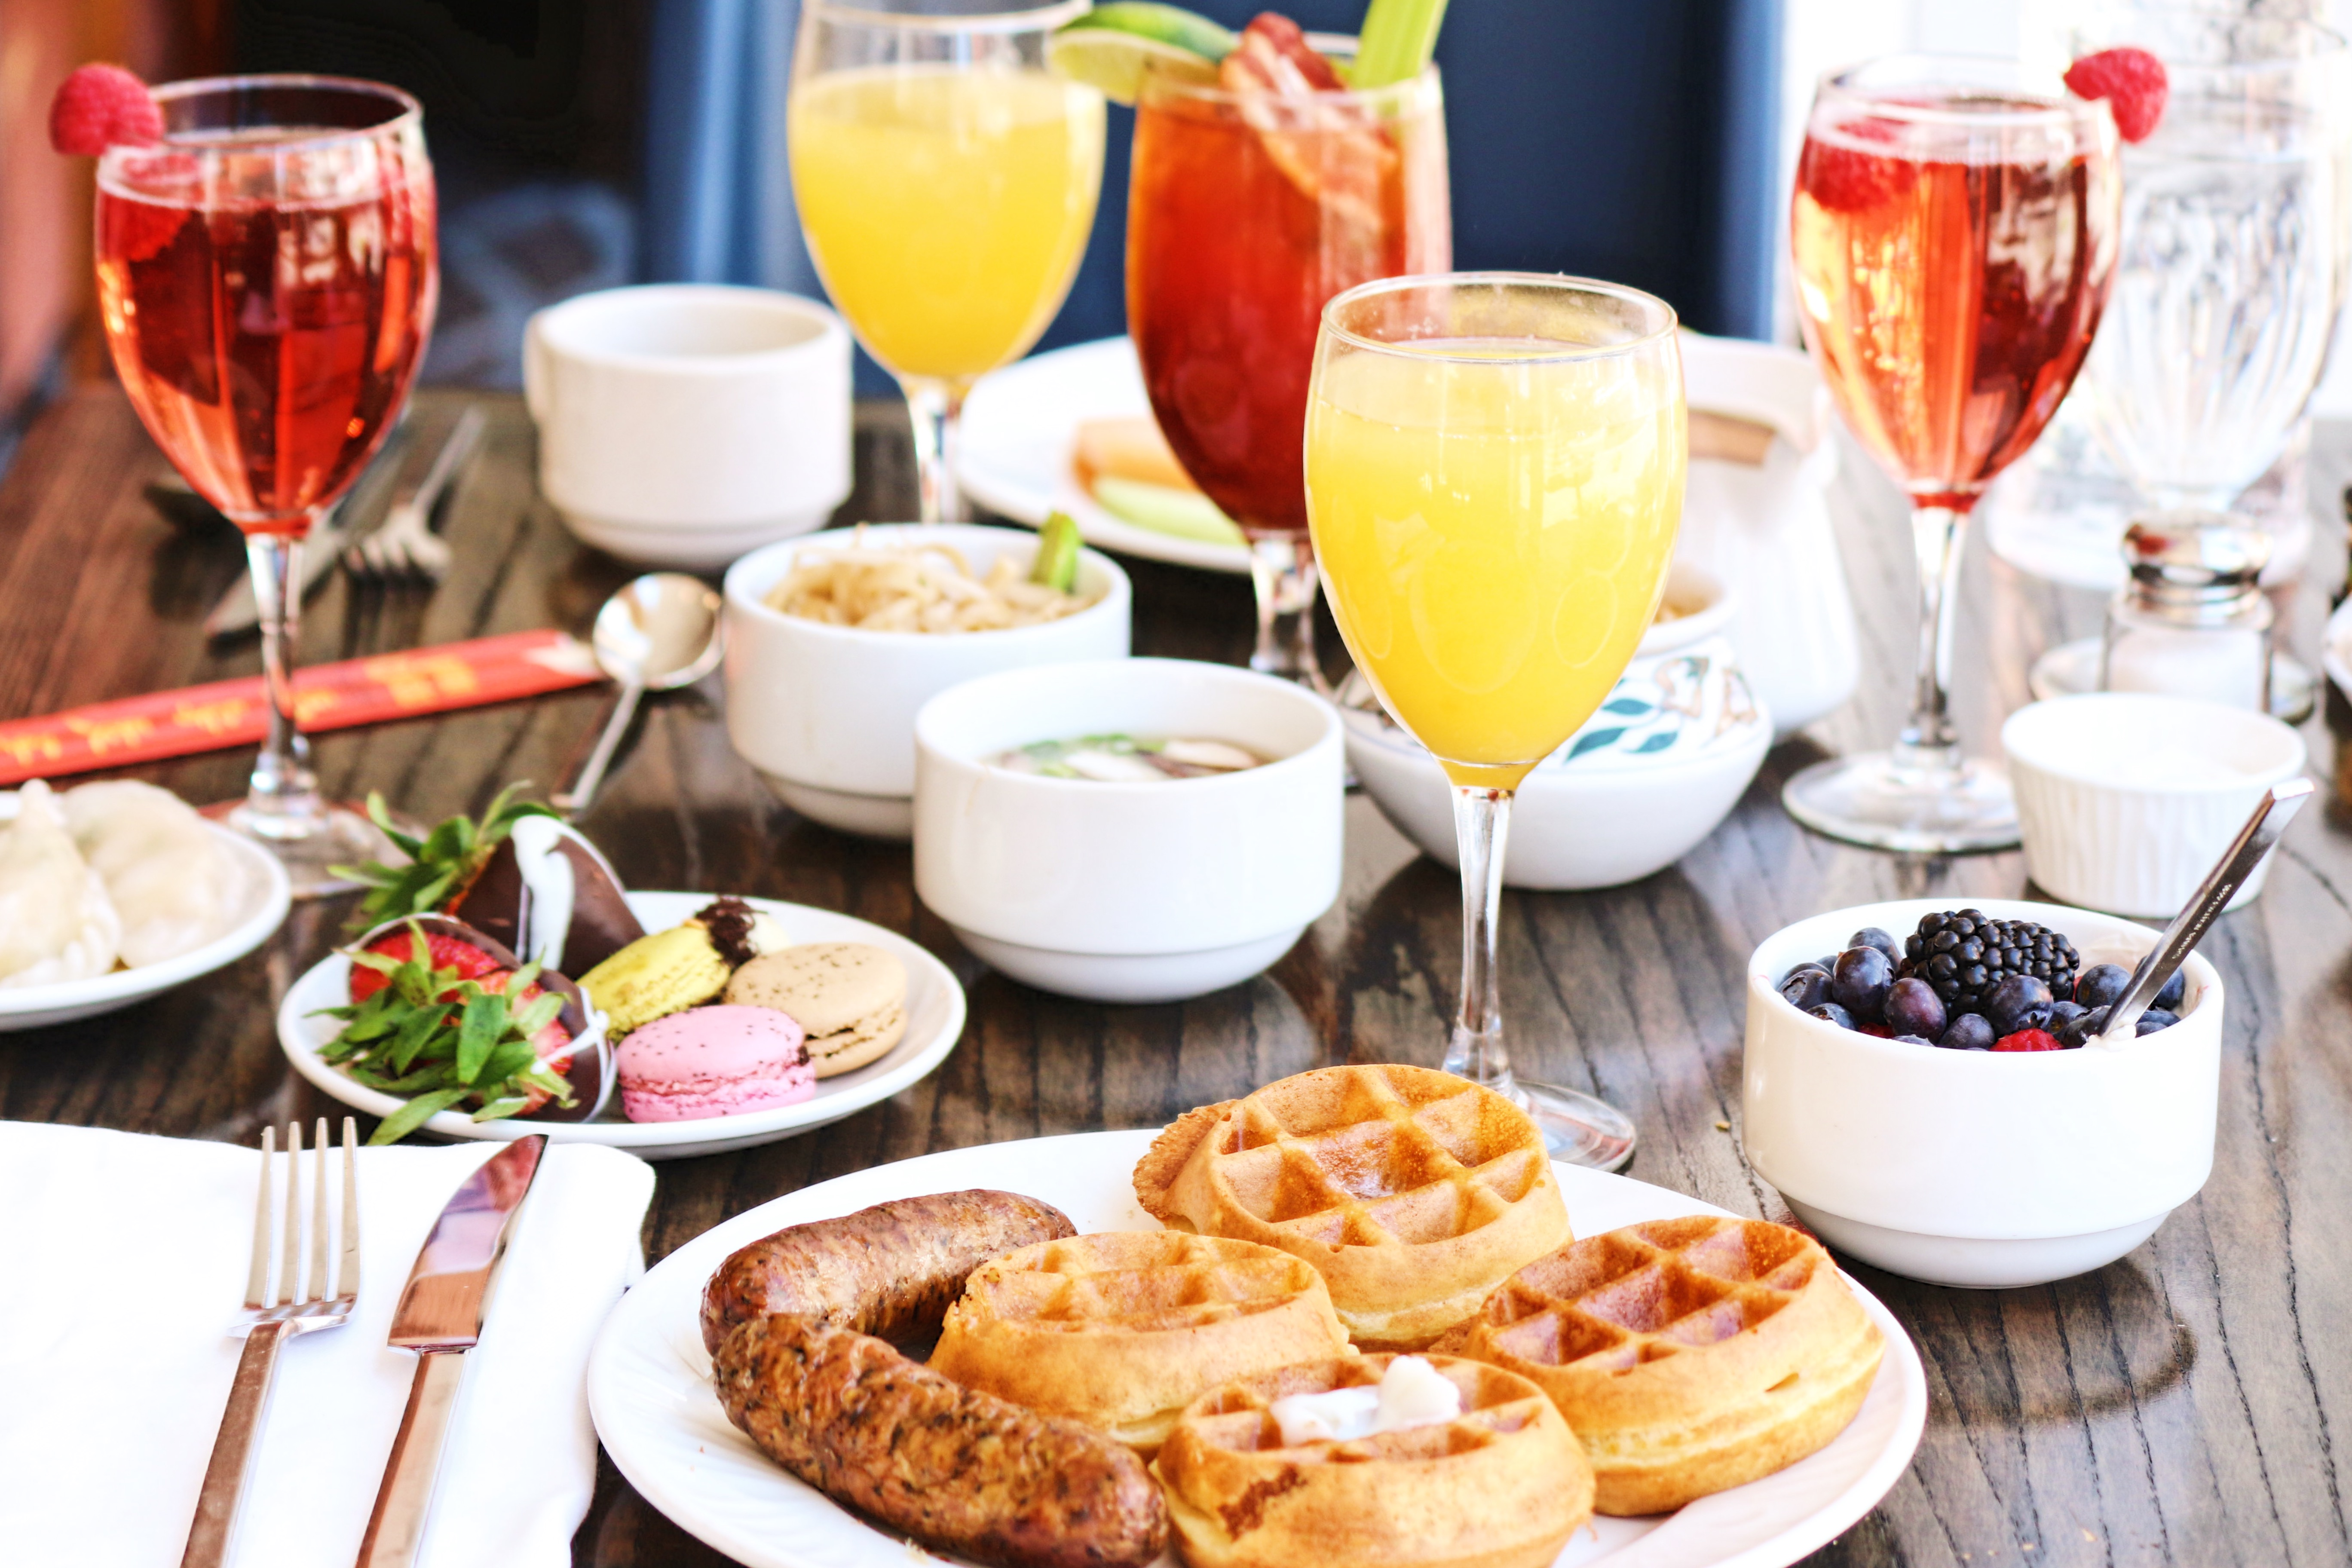 A brunch set-up with waffles and mimosas.